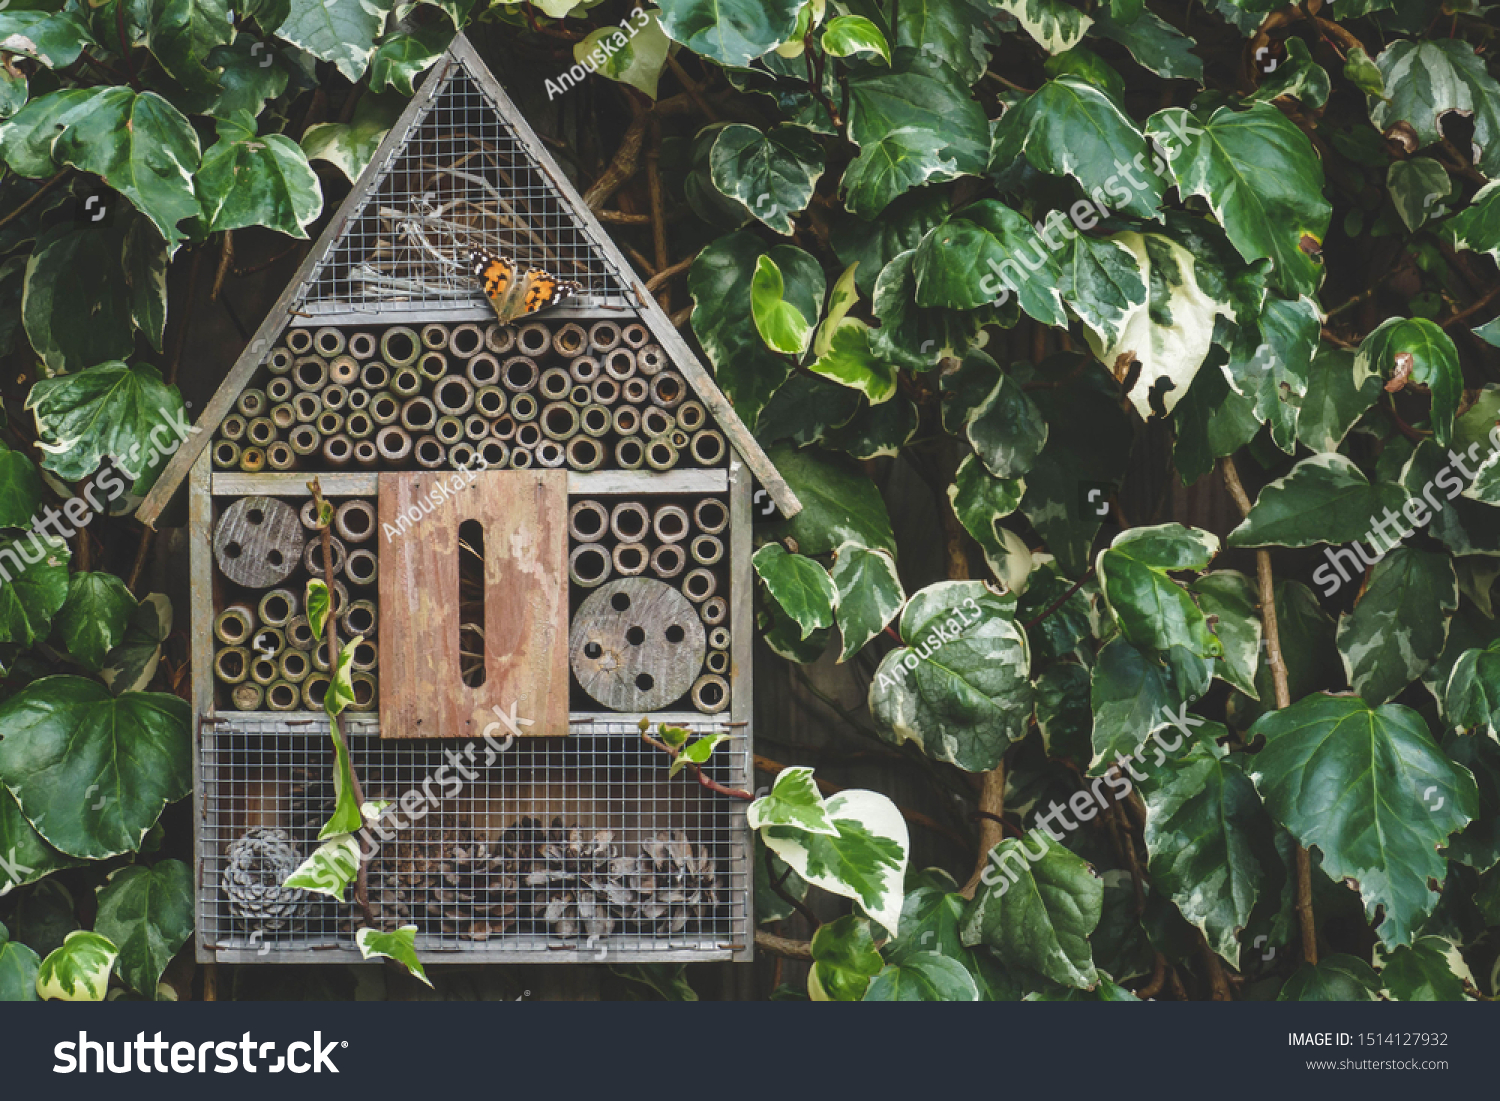 An insect / bug hotel hung on an ivy covered wall in an English country garden. A painted lady butterfly is resting on the wooden front. #1514127932